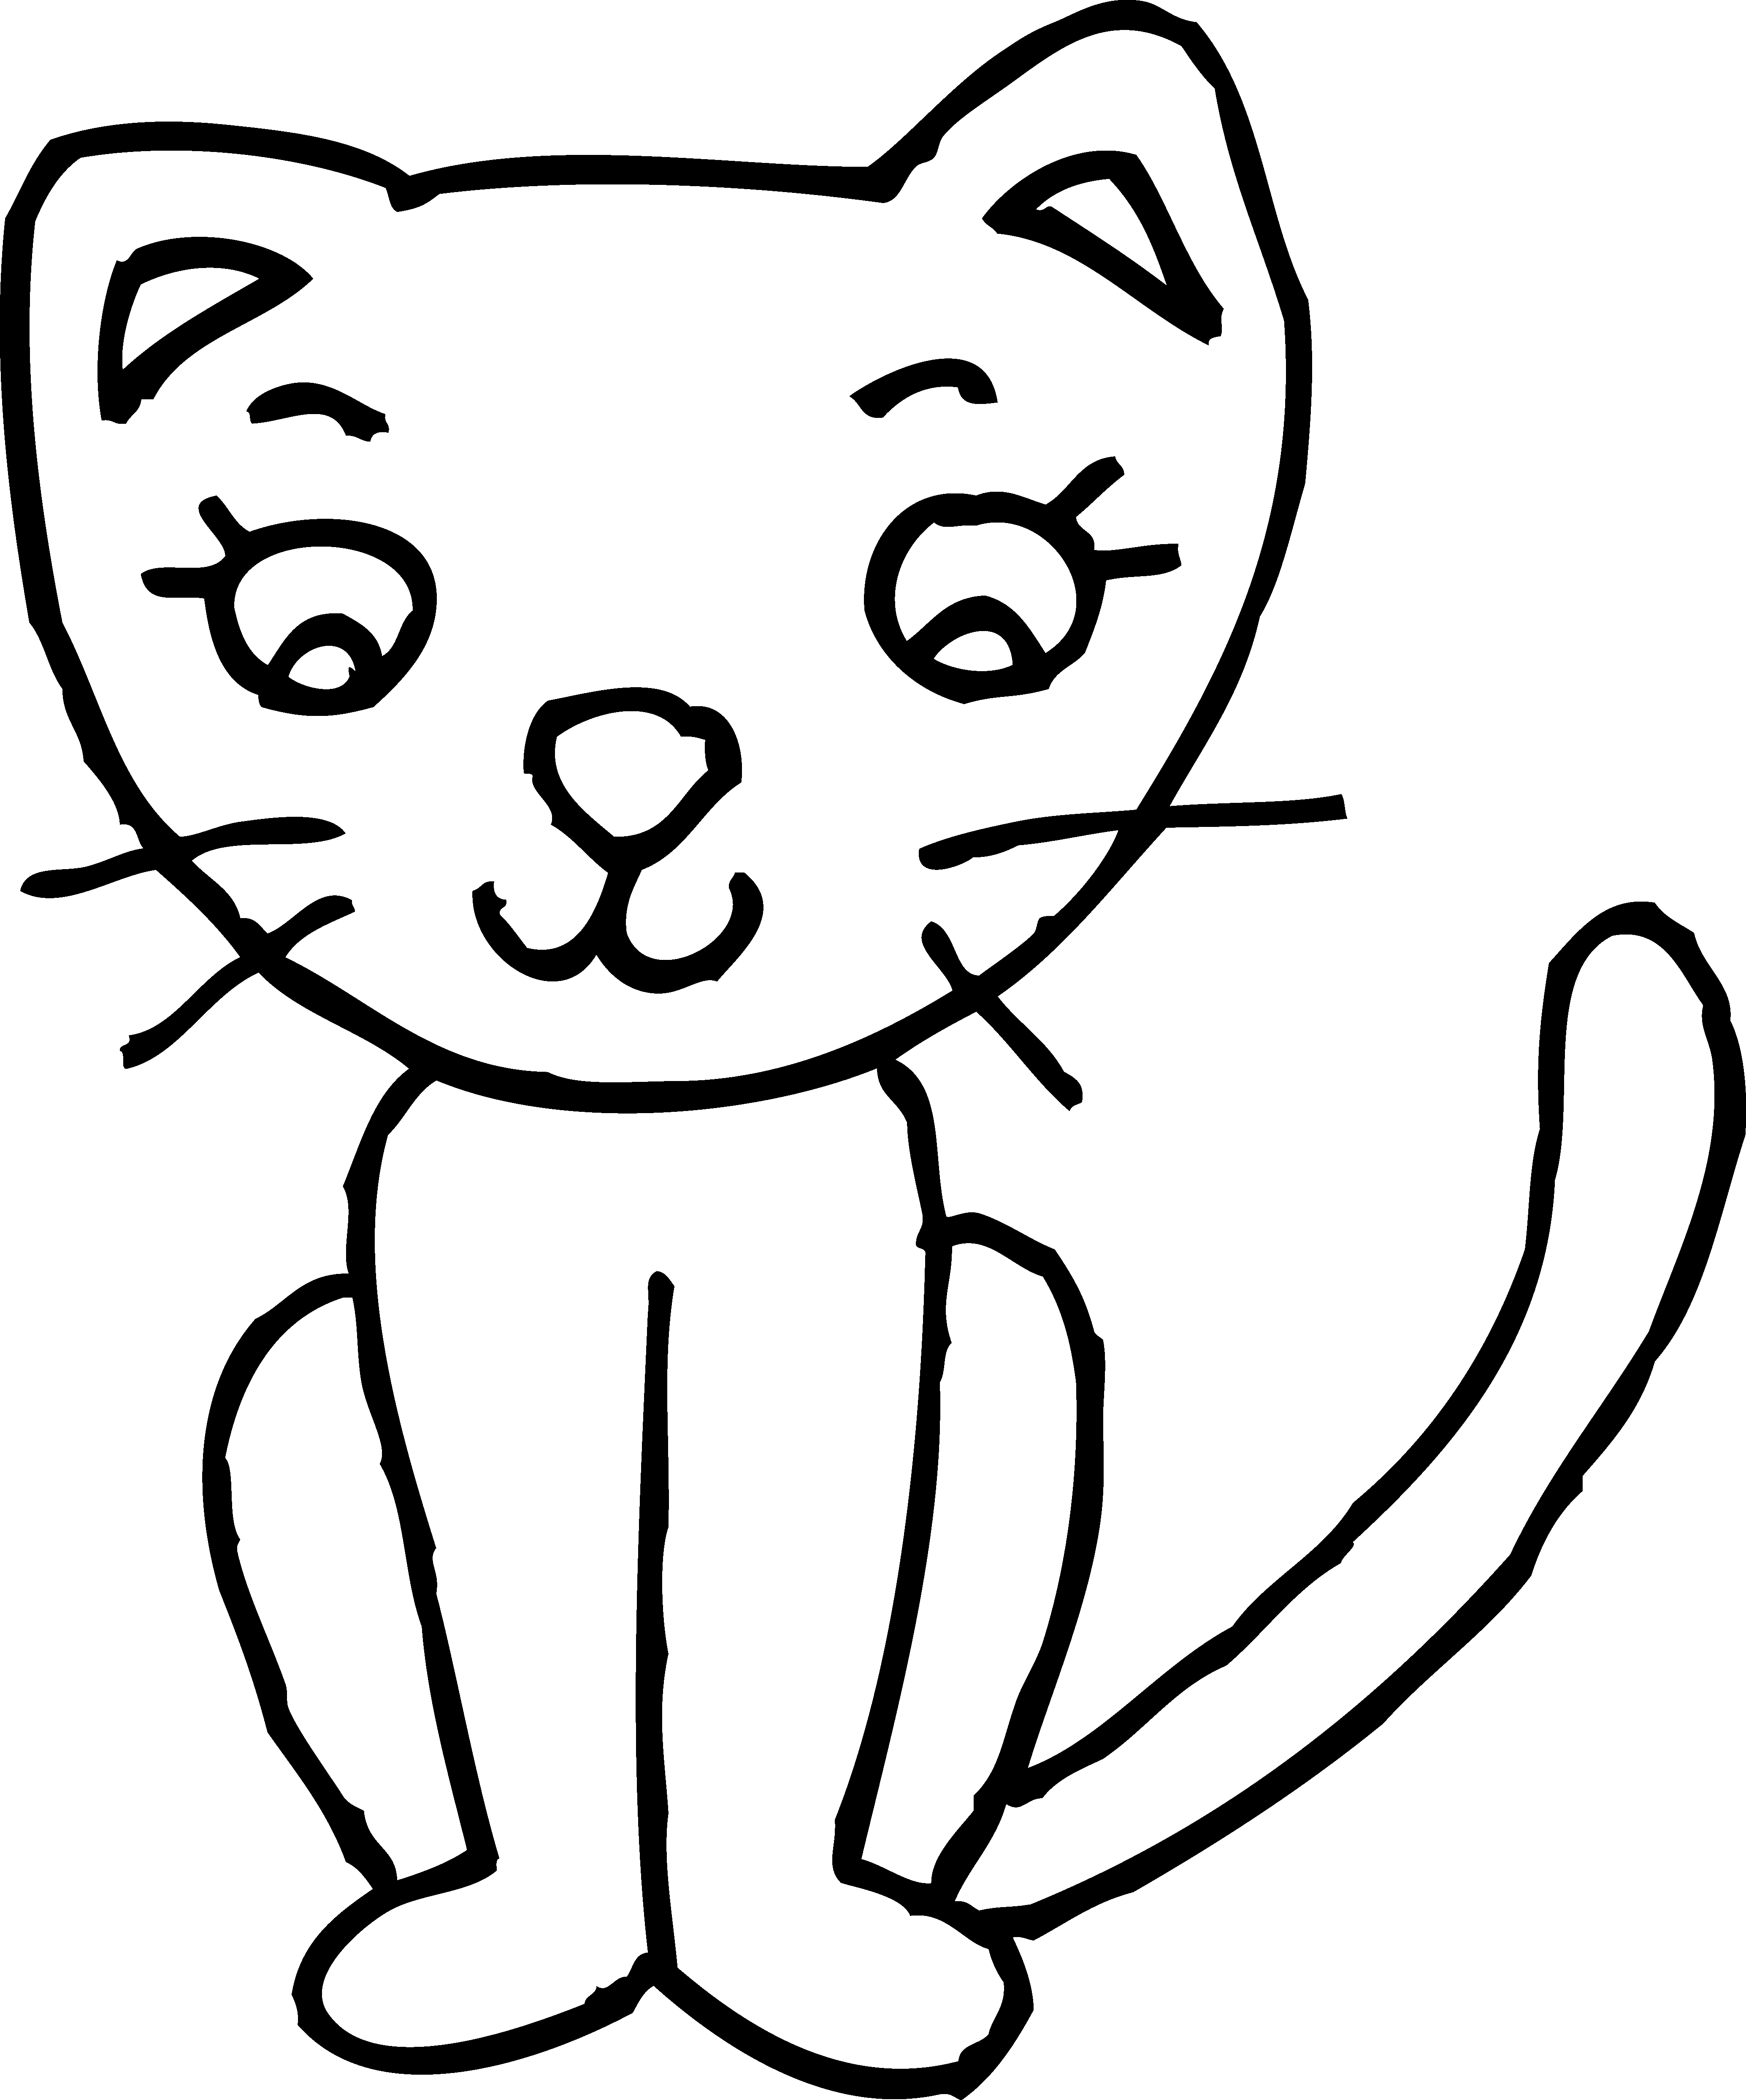 Kitty clipart easy. Cat black and white